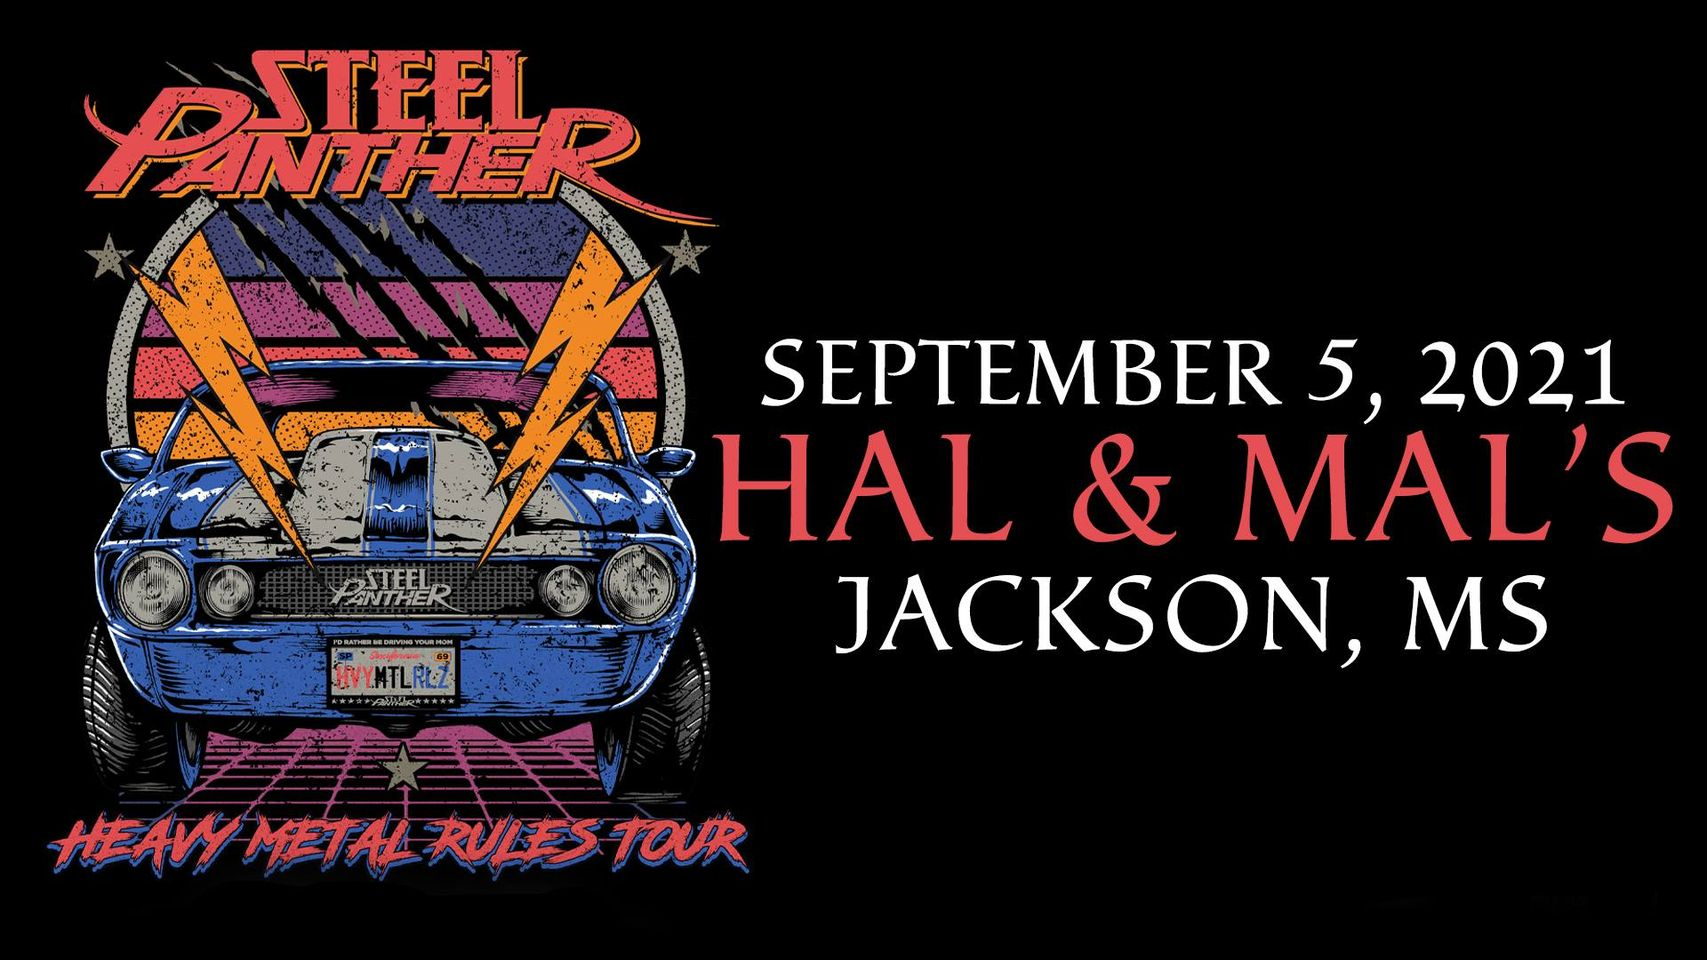 Steel Panther: Heavy Metal Rules Tour at Hal & Mal's